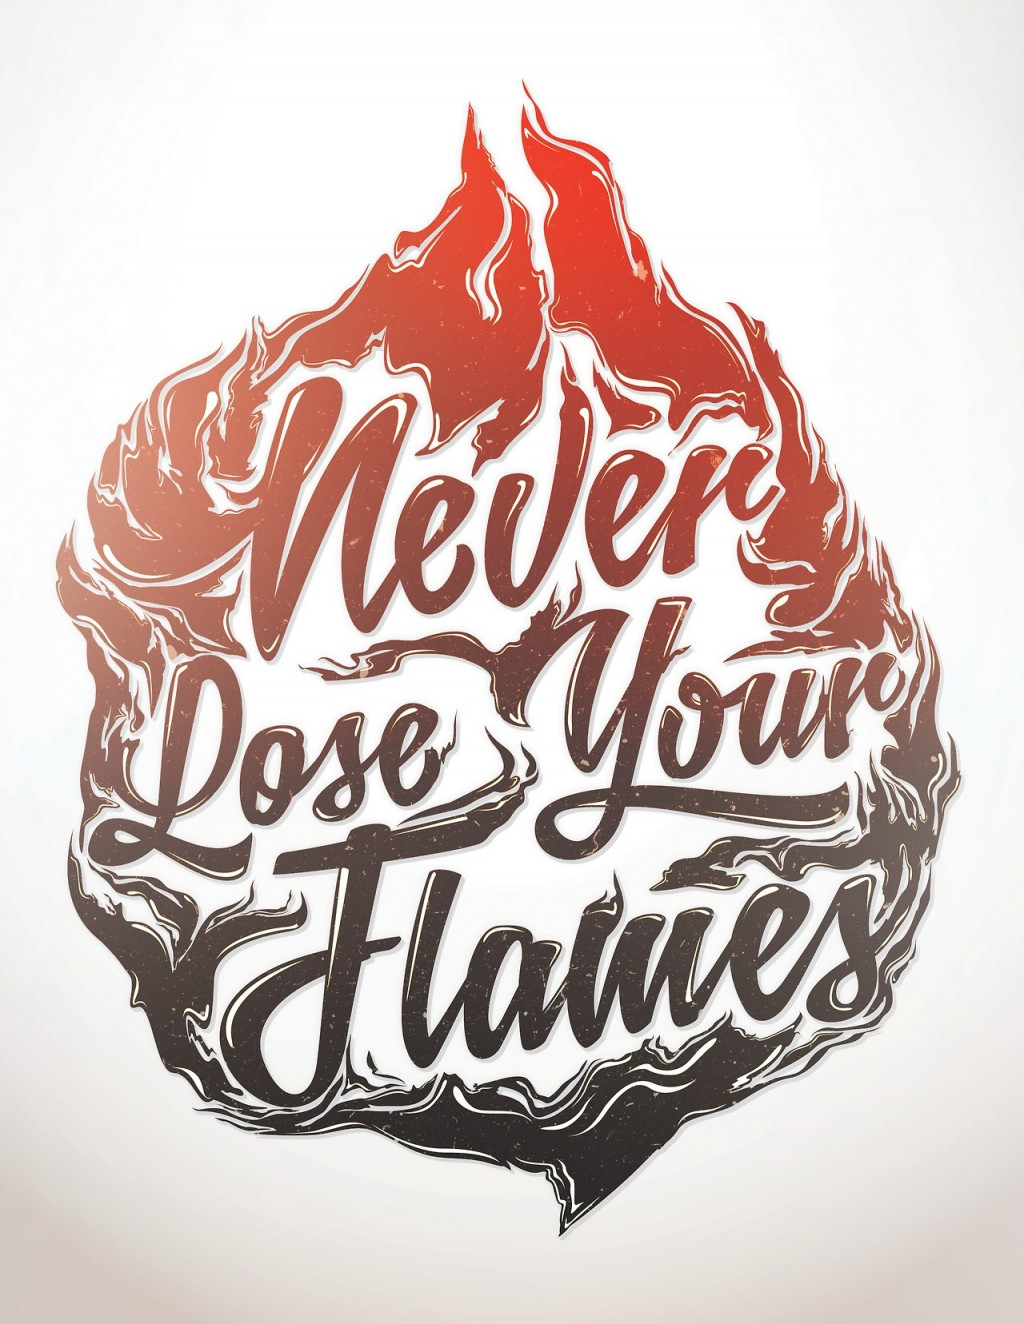 Never Lose Your Flames